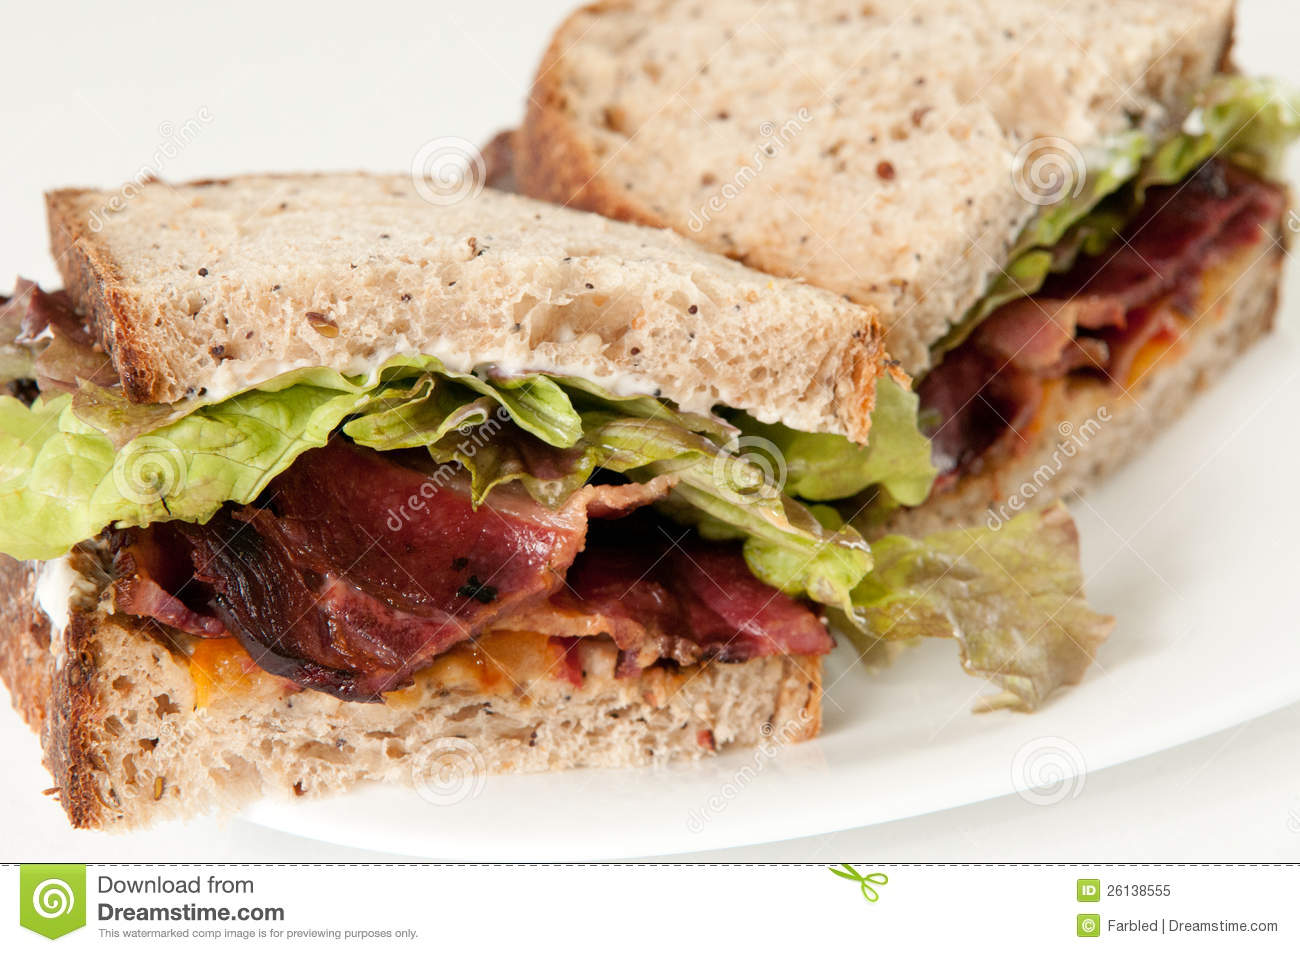 Bacon, Lettuce And Tomato Sandwich Royalty Free Stock Photo - Image ...